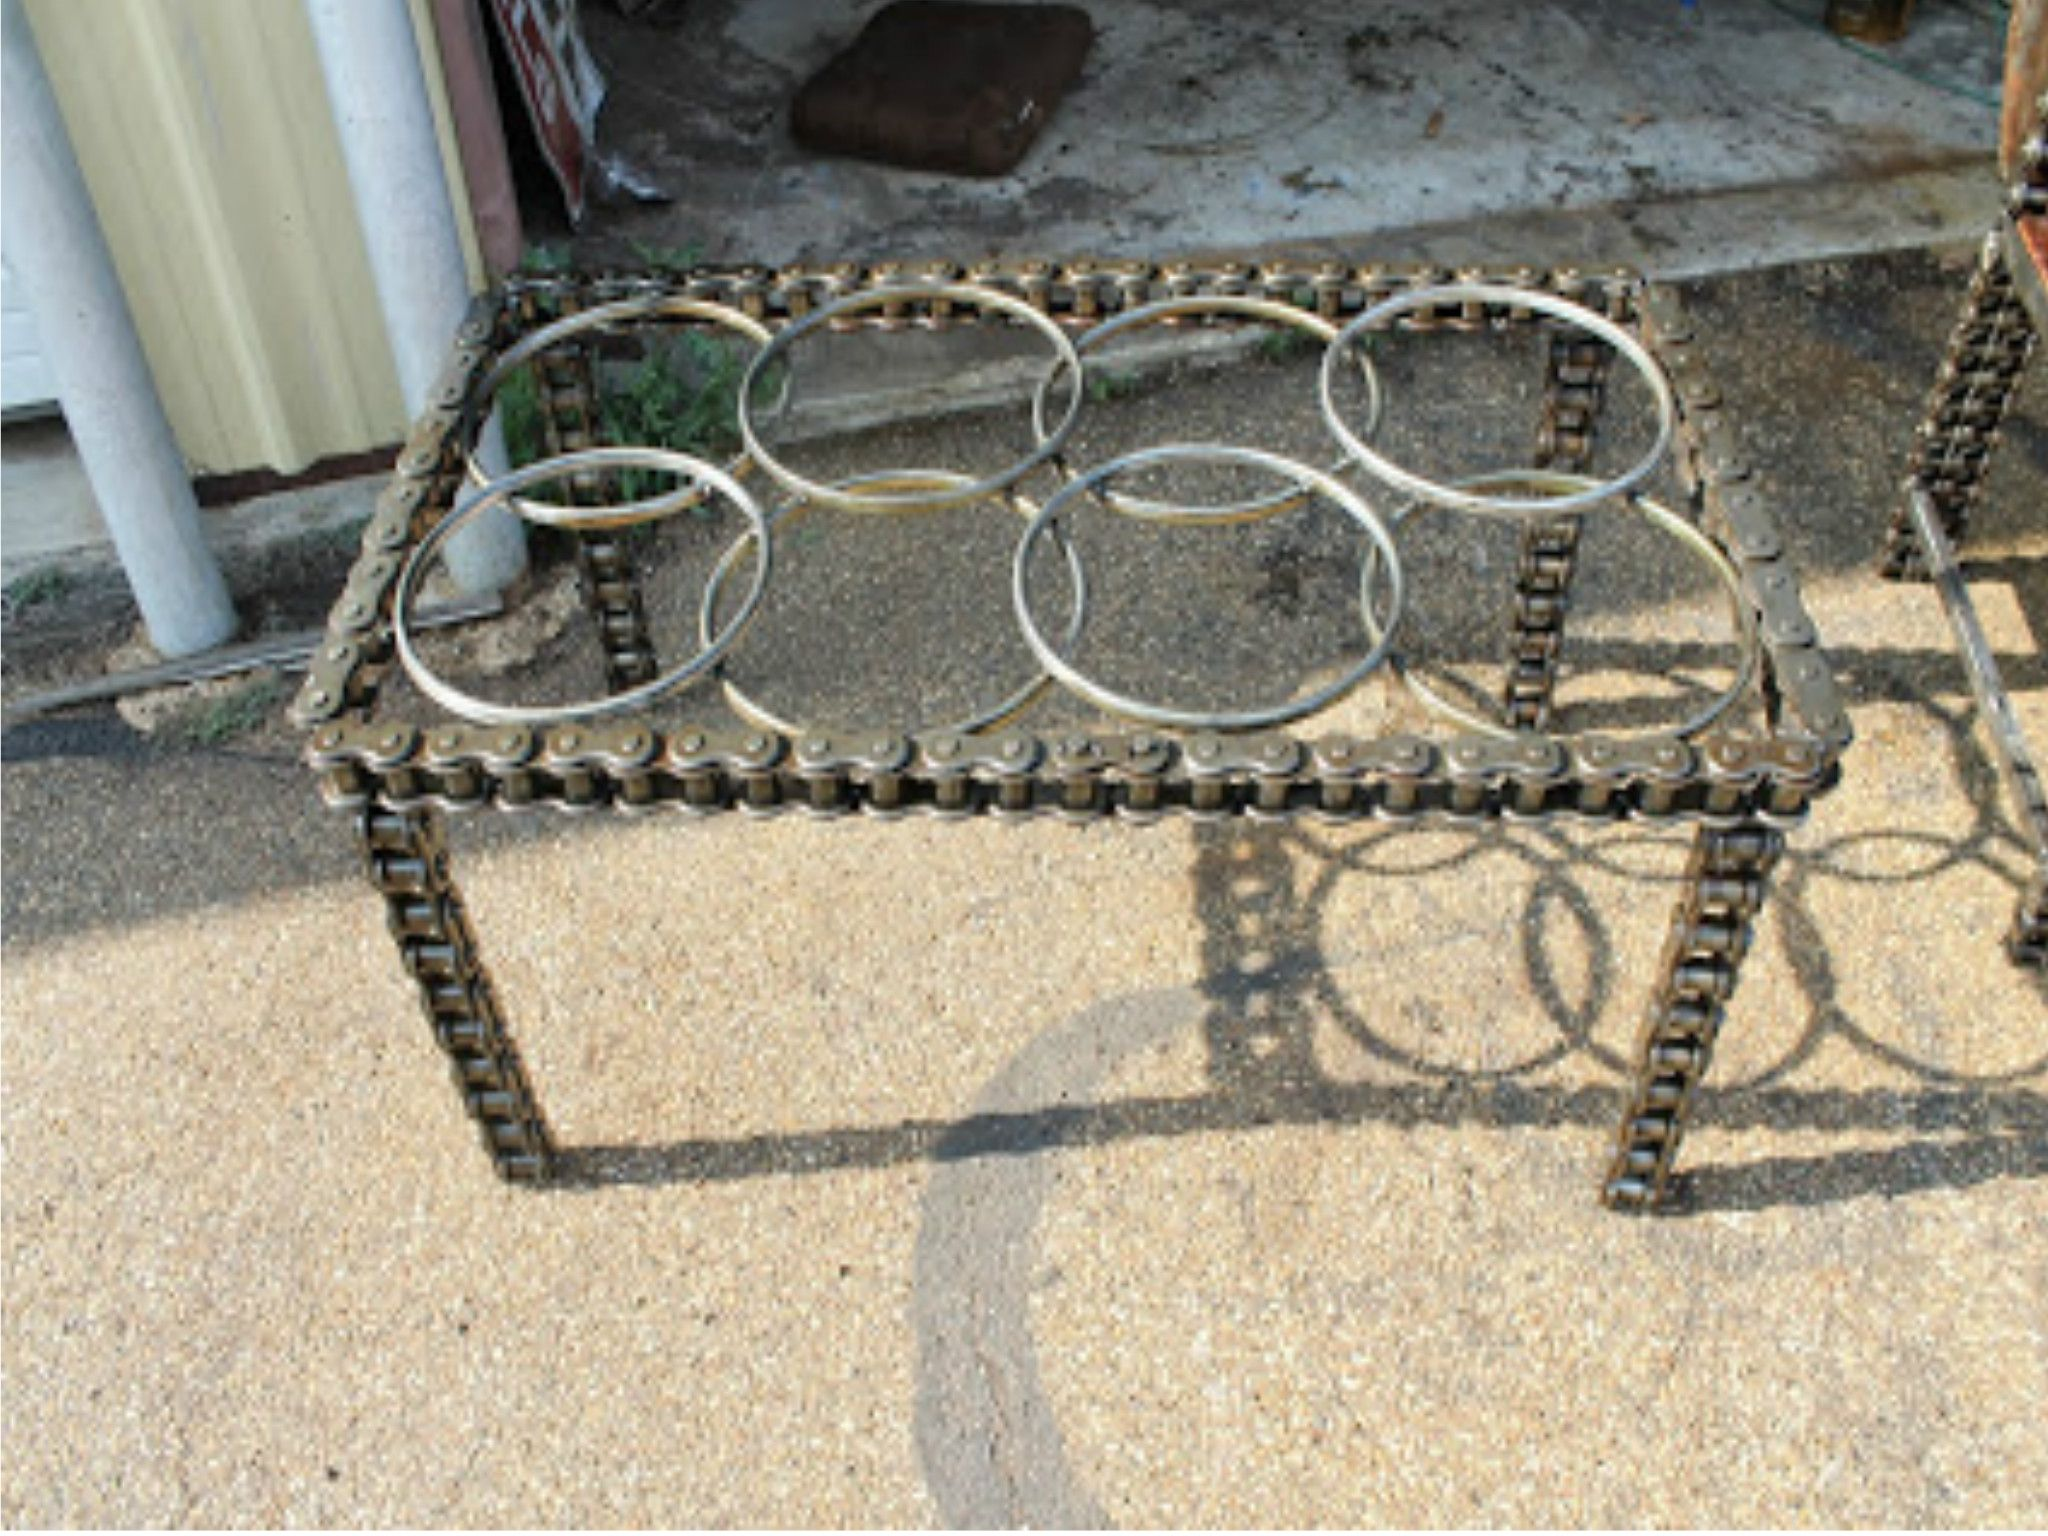 custom coffee table sculptural furniture metal chain industrial chic accent made small mats torch lamp canadian tire lounge chairs pier lamps vintage asian pottery barn lazy susan